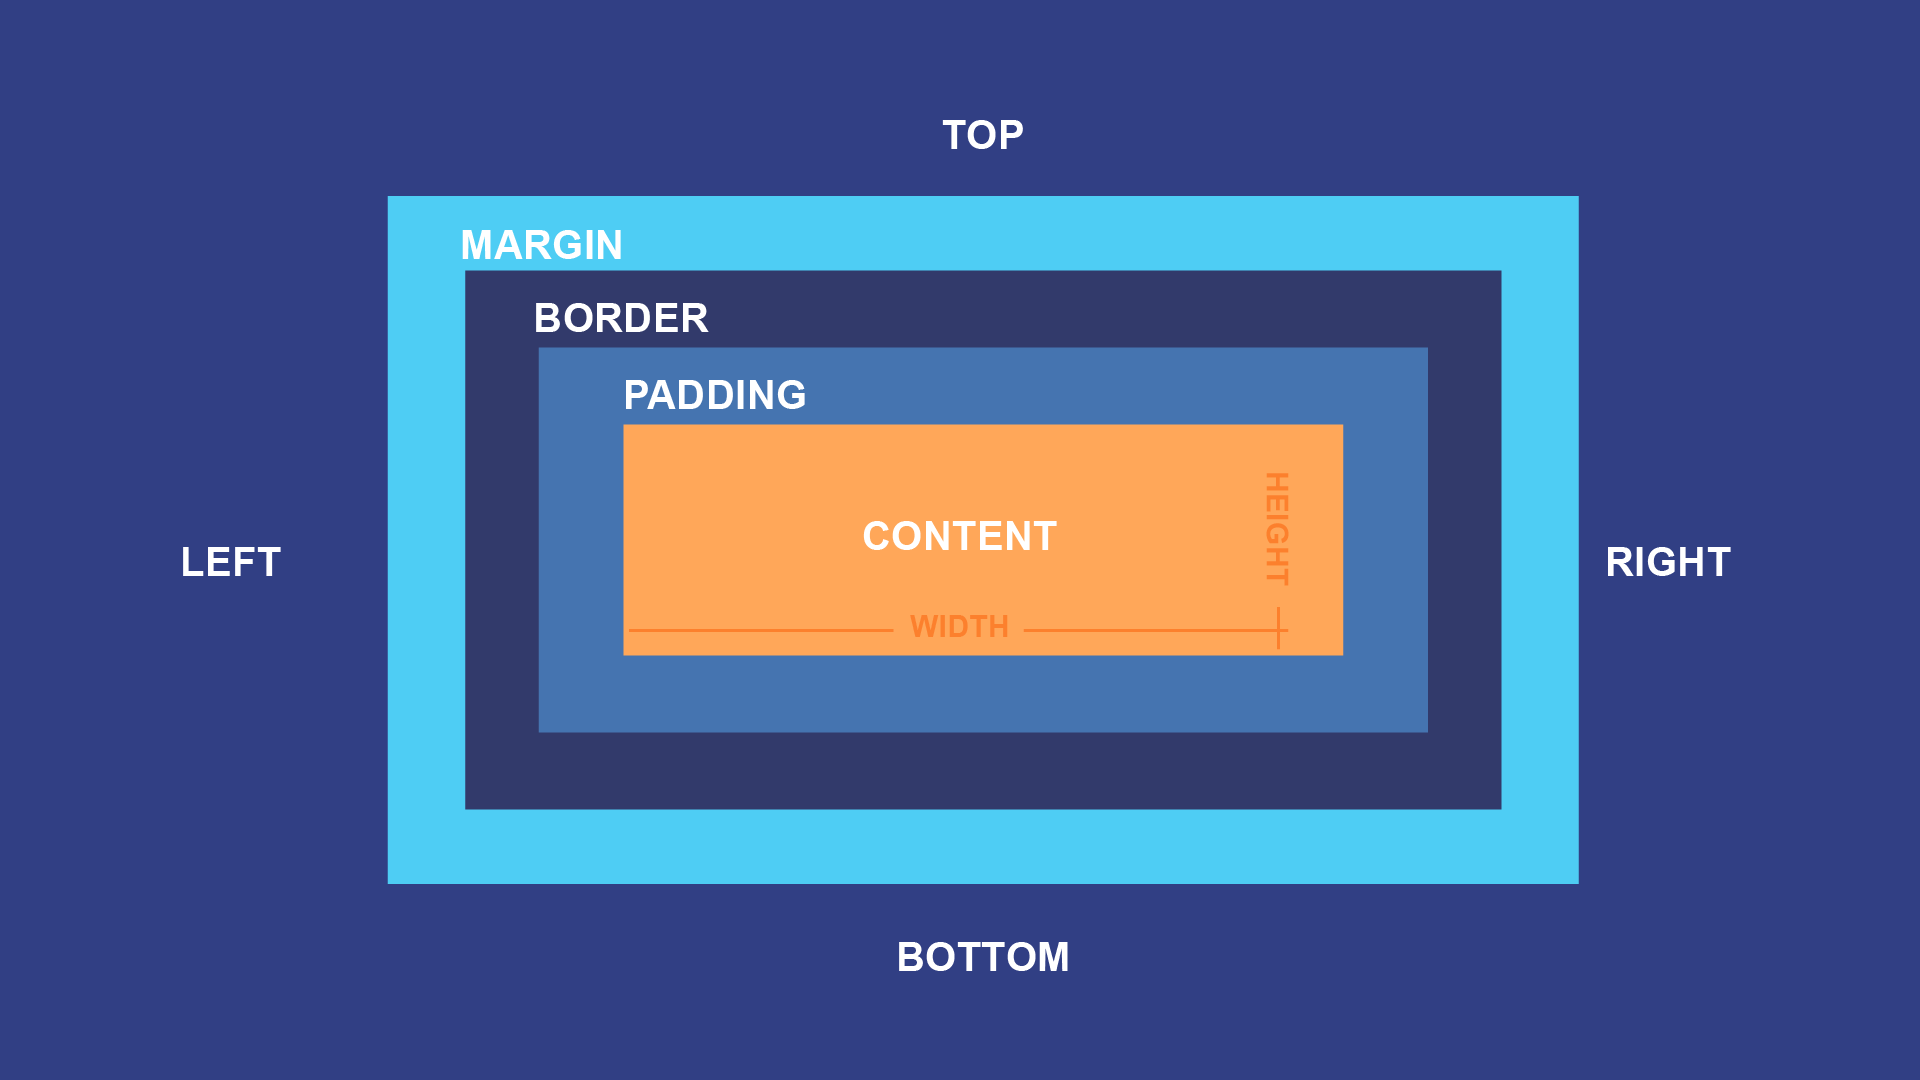 labeled diagram of box model, showing margins, borders, and padding